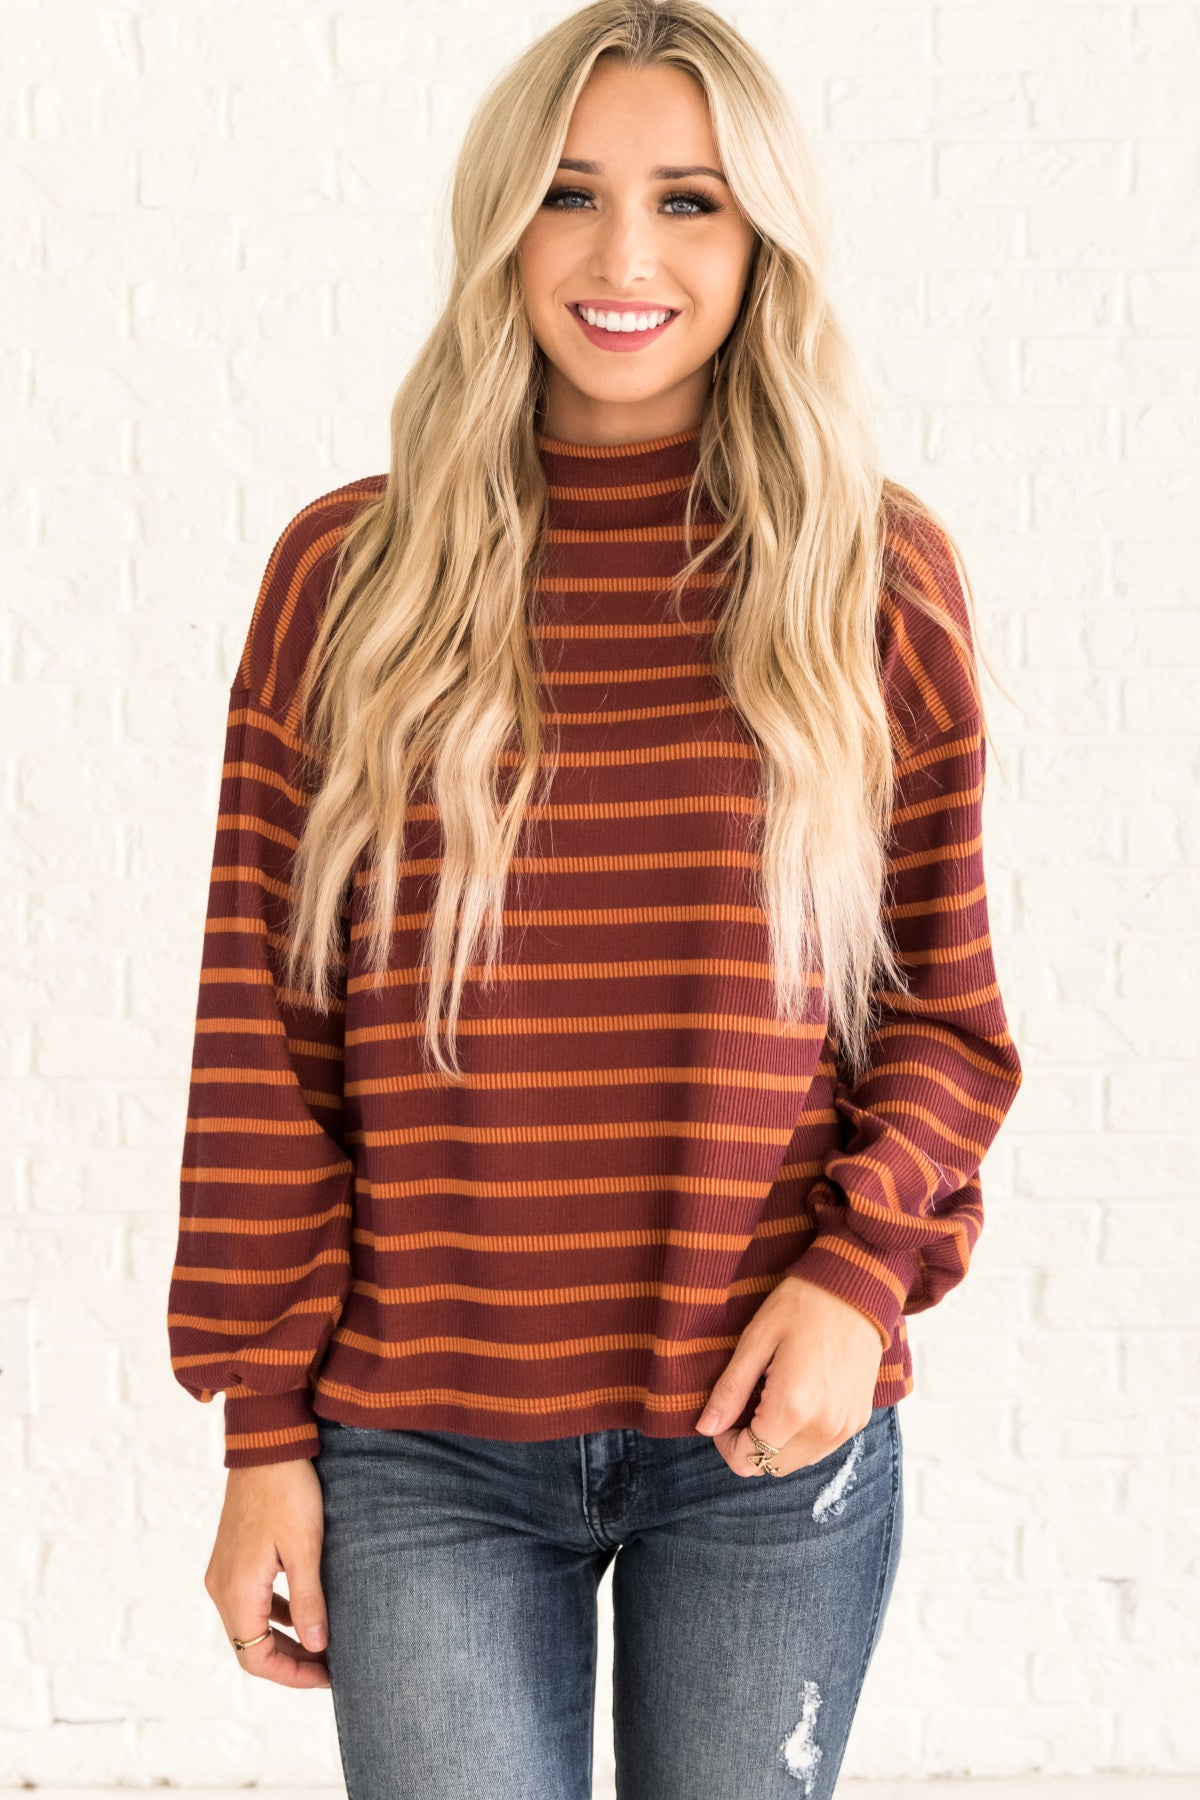 Orange Cute Striped Pullover Turtleneck Top for Fall